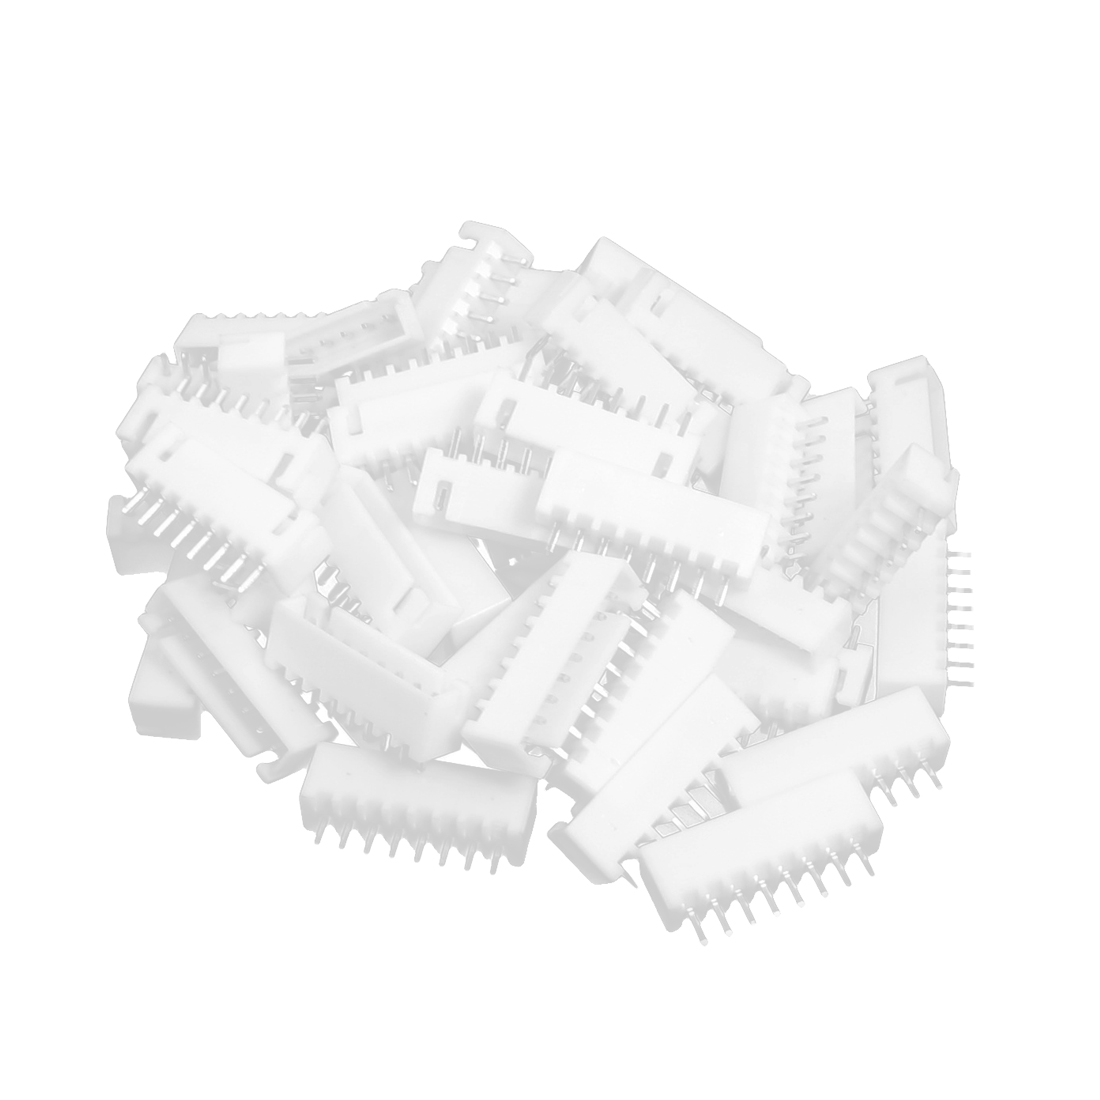 50pcs 1 Row 8 Pin 2.54mm Pitch Pluggable Socket Straight Header Connector Adapter White